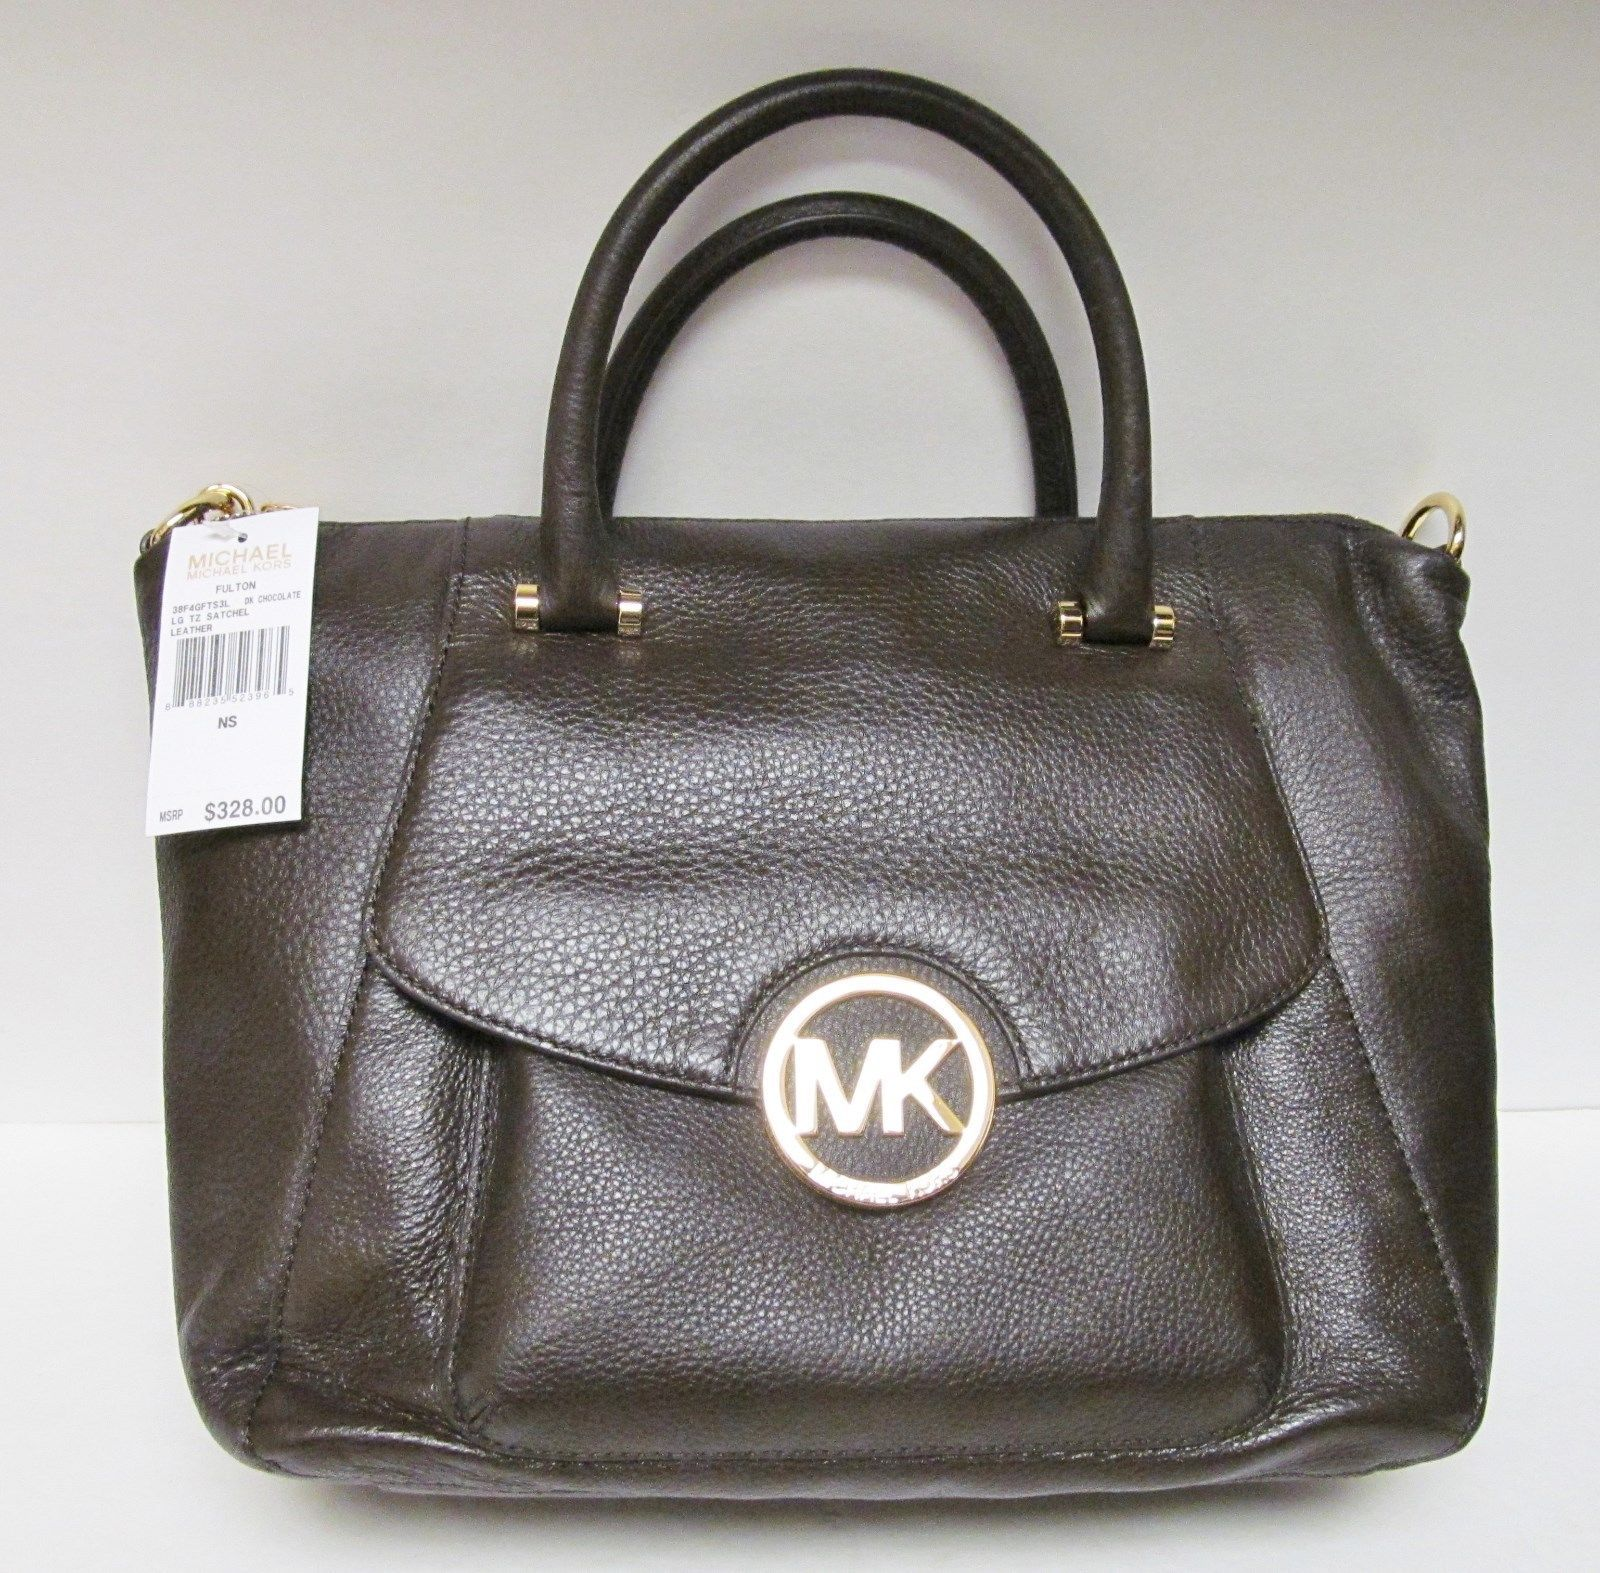 7edd5de6607f ... new arrivals new michael kors handbag fulton shoulder bag messenger  crossbody purse brown cb908 86194